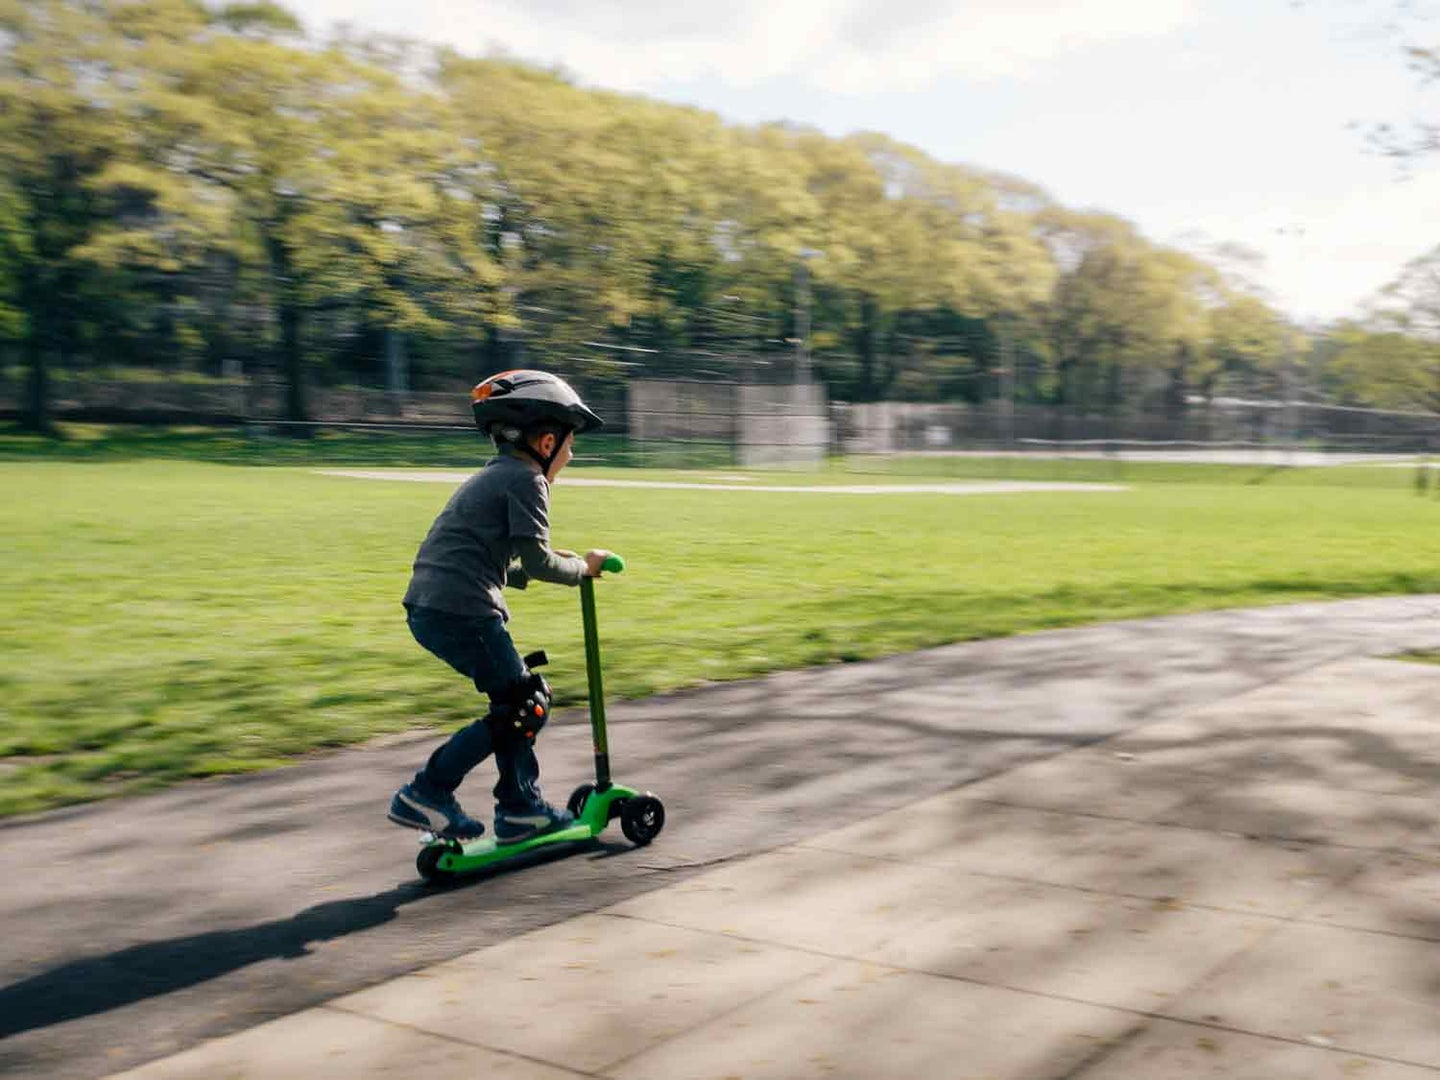 Kid riding scooter